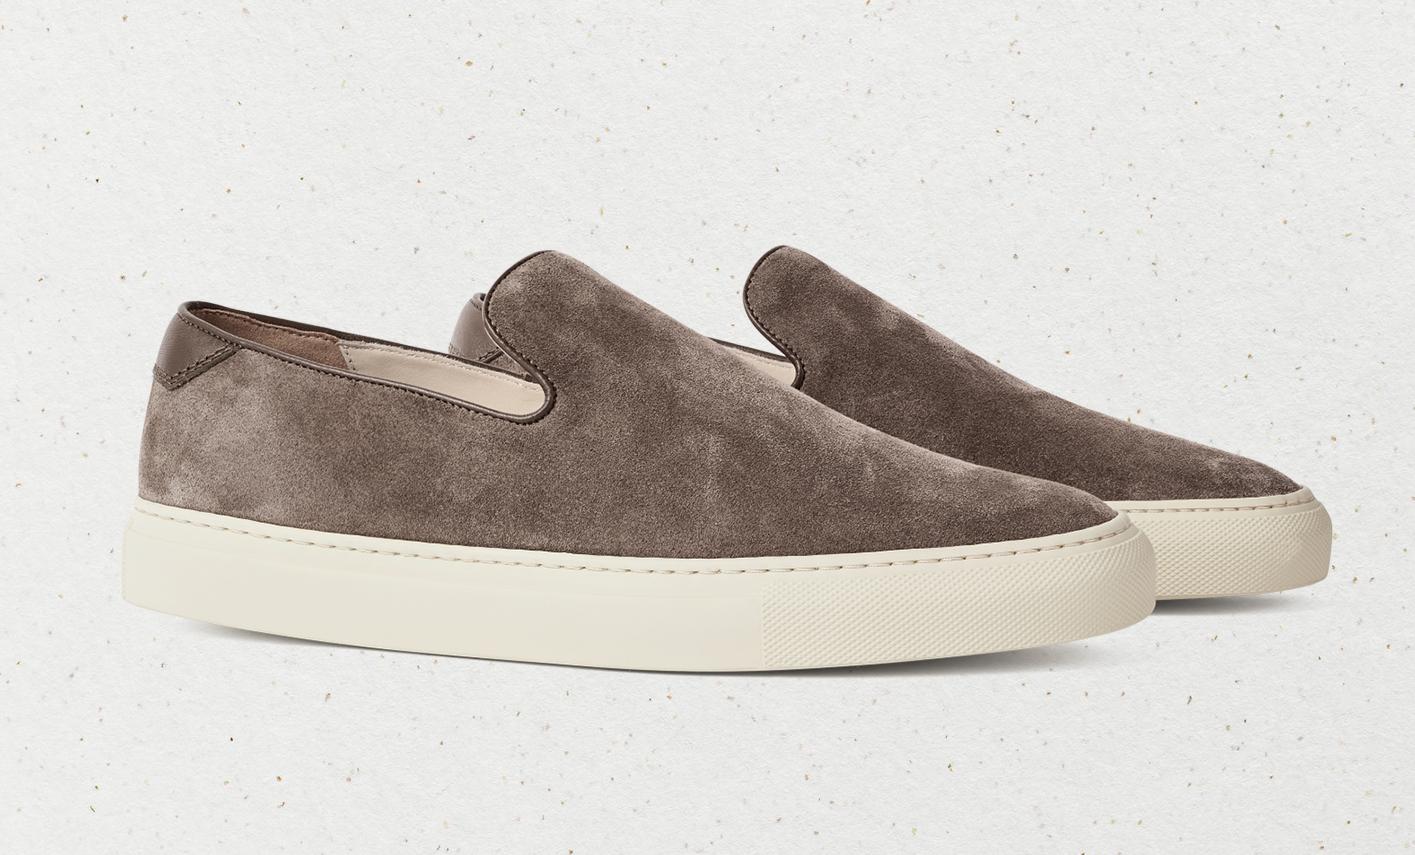 Supreme comfort from CQP's 'jetty' low wholecut slip-on sneakers